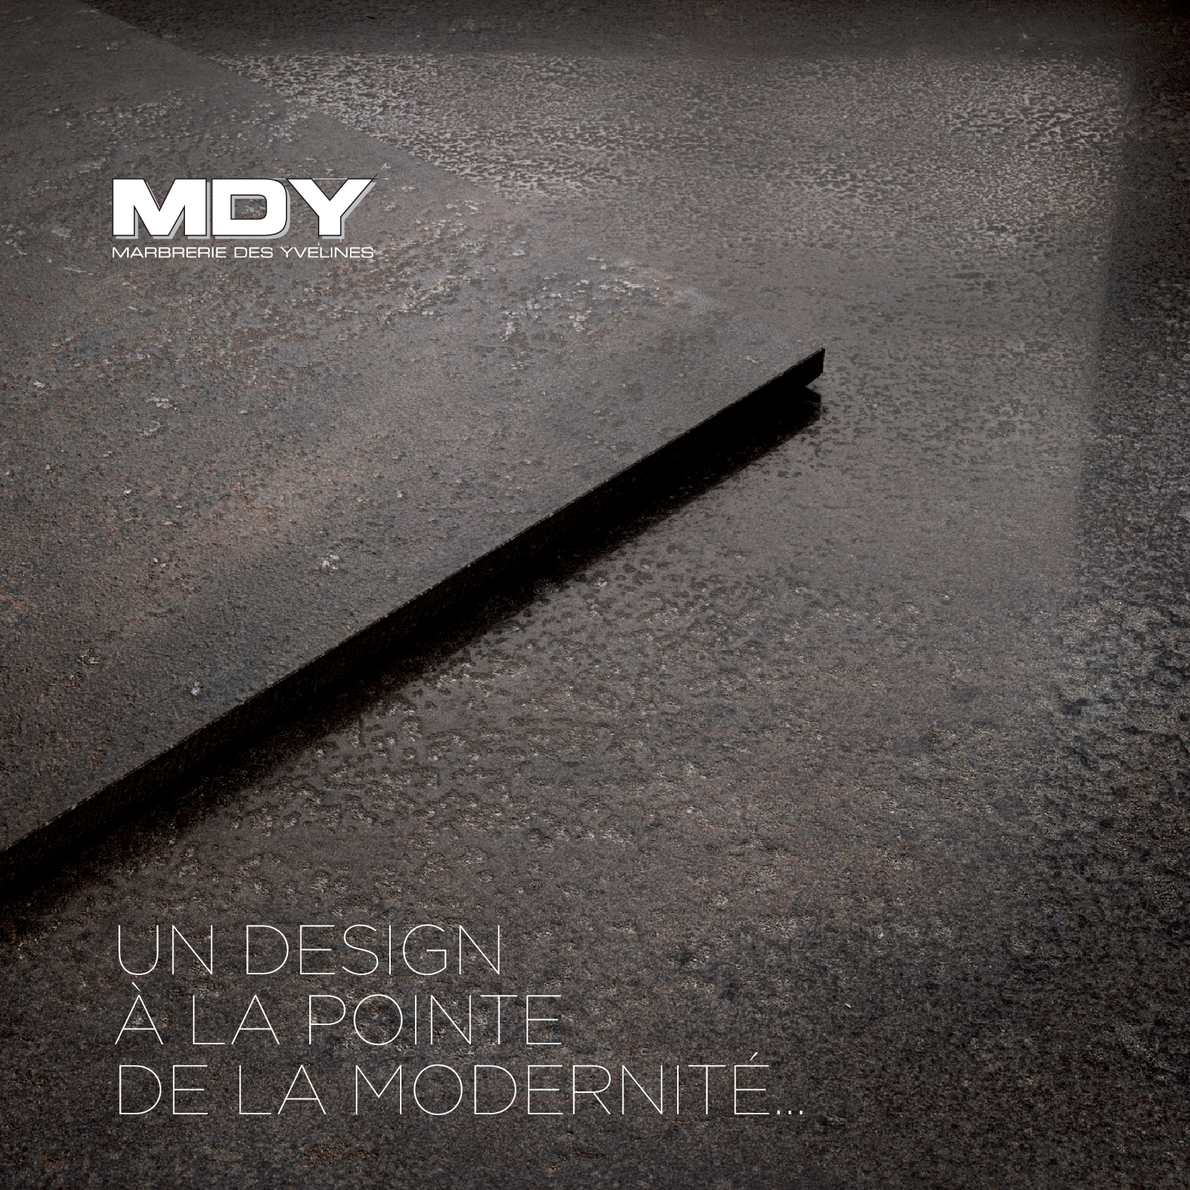 Mdy Pont L Eveque calaméo - mdy